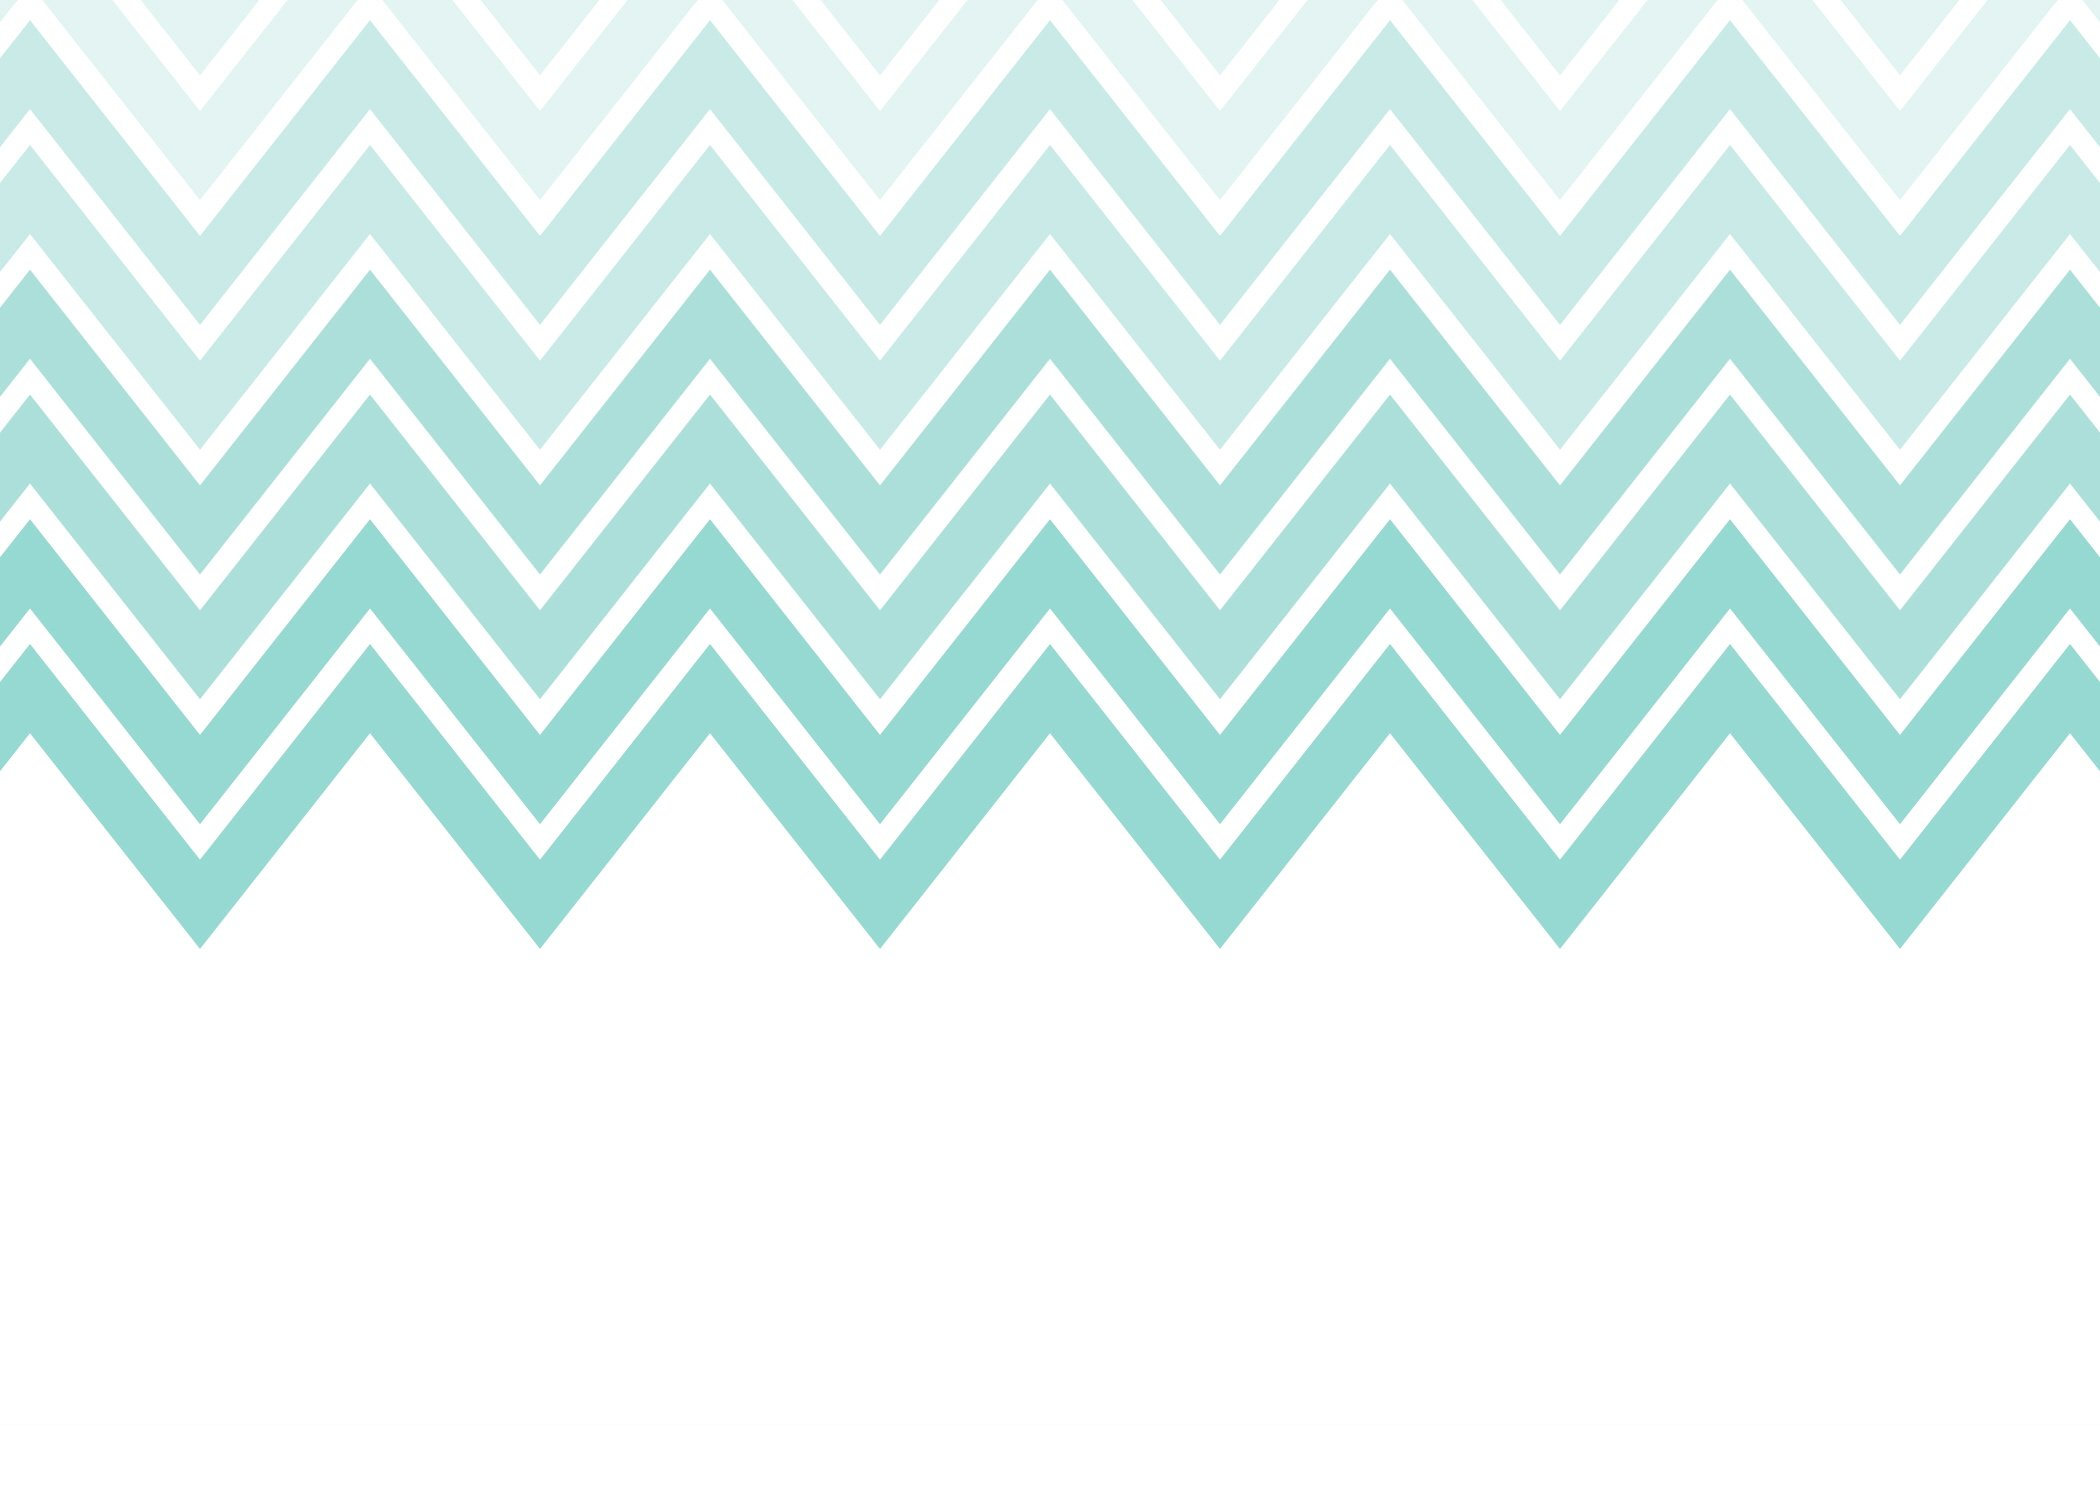 Aqua and gray chevron wallpaper wallpapersafari for Teal chevron wallpaper